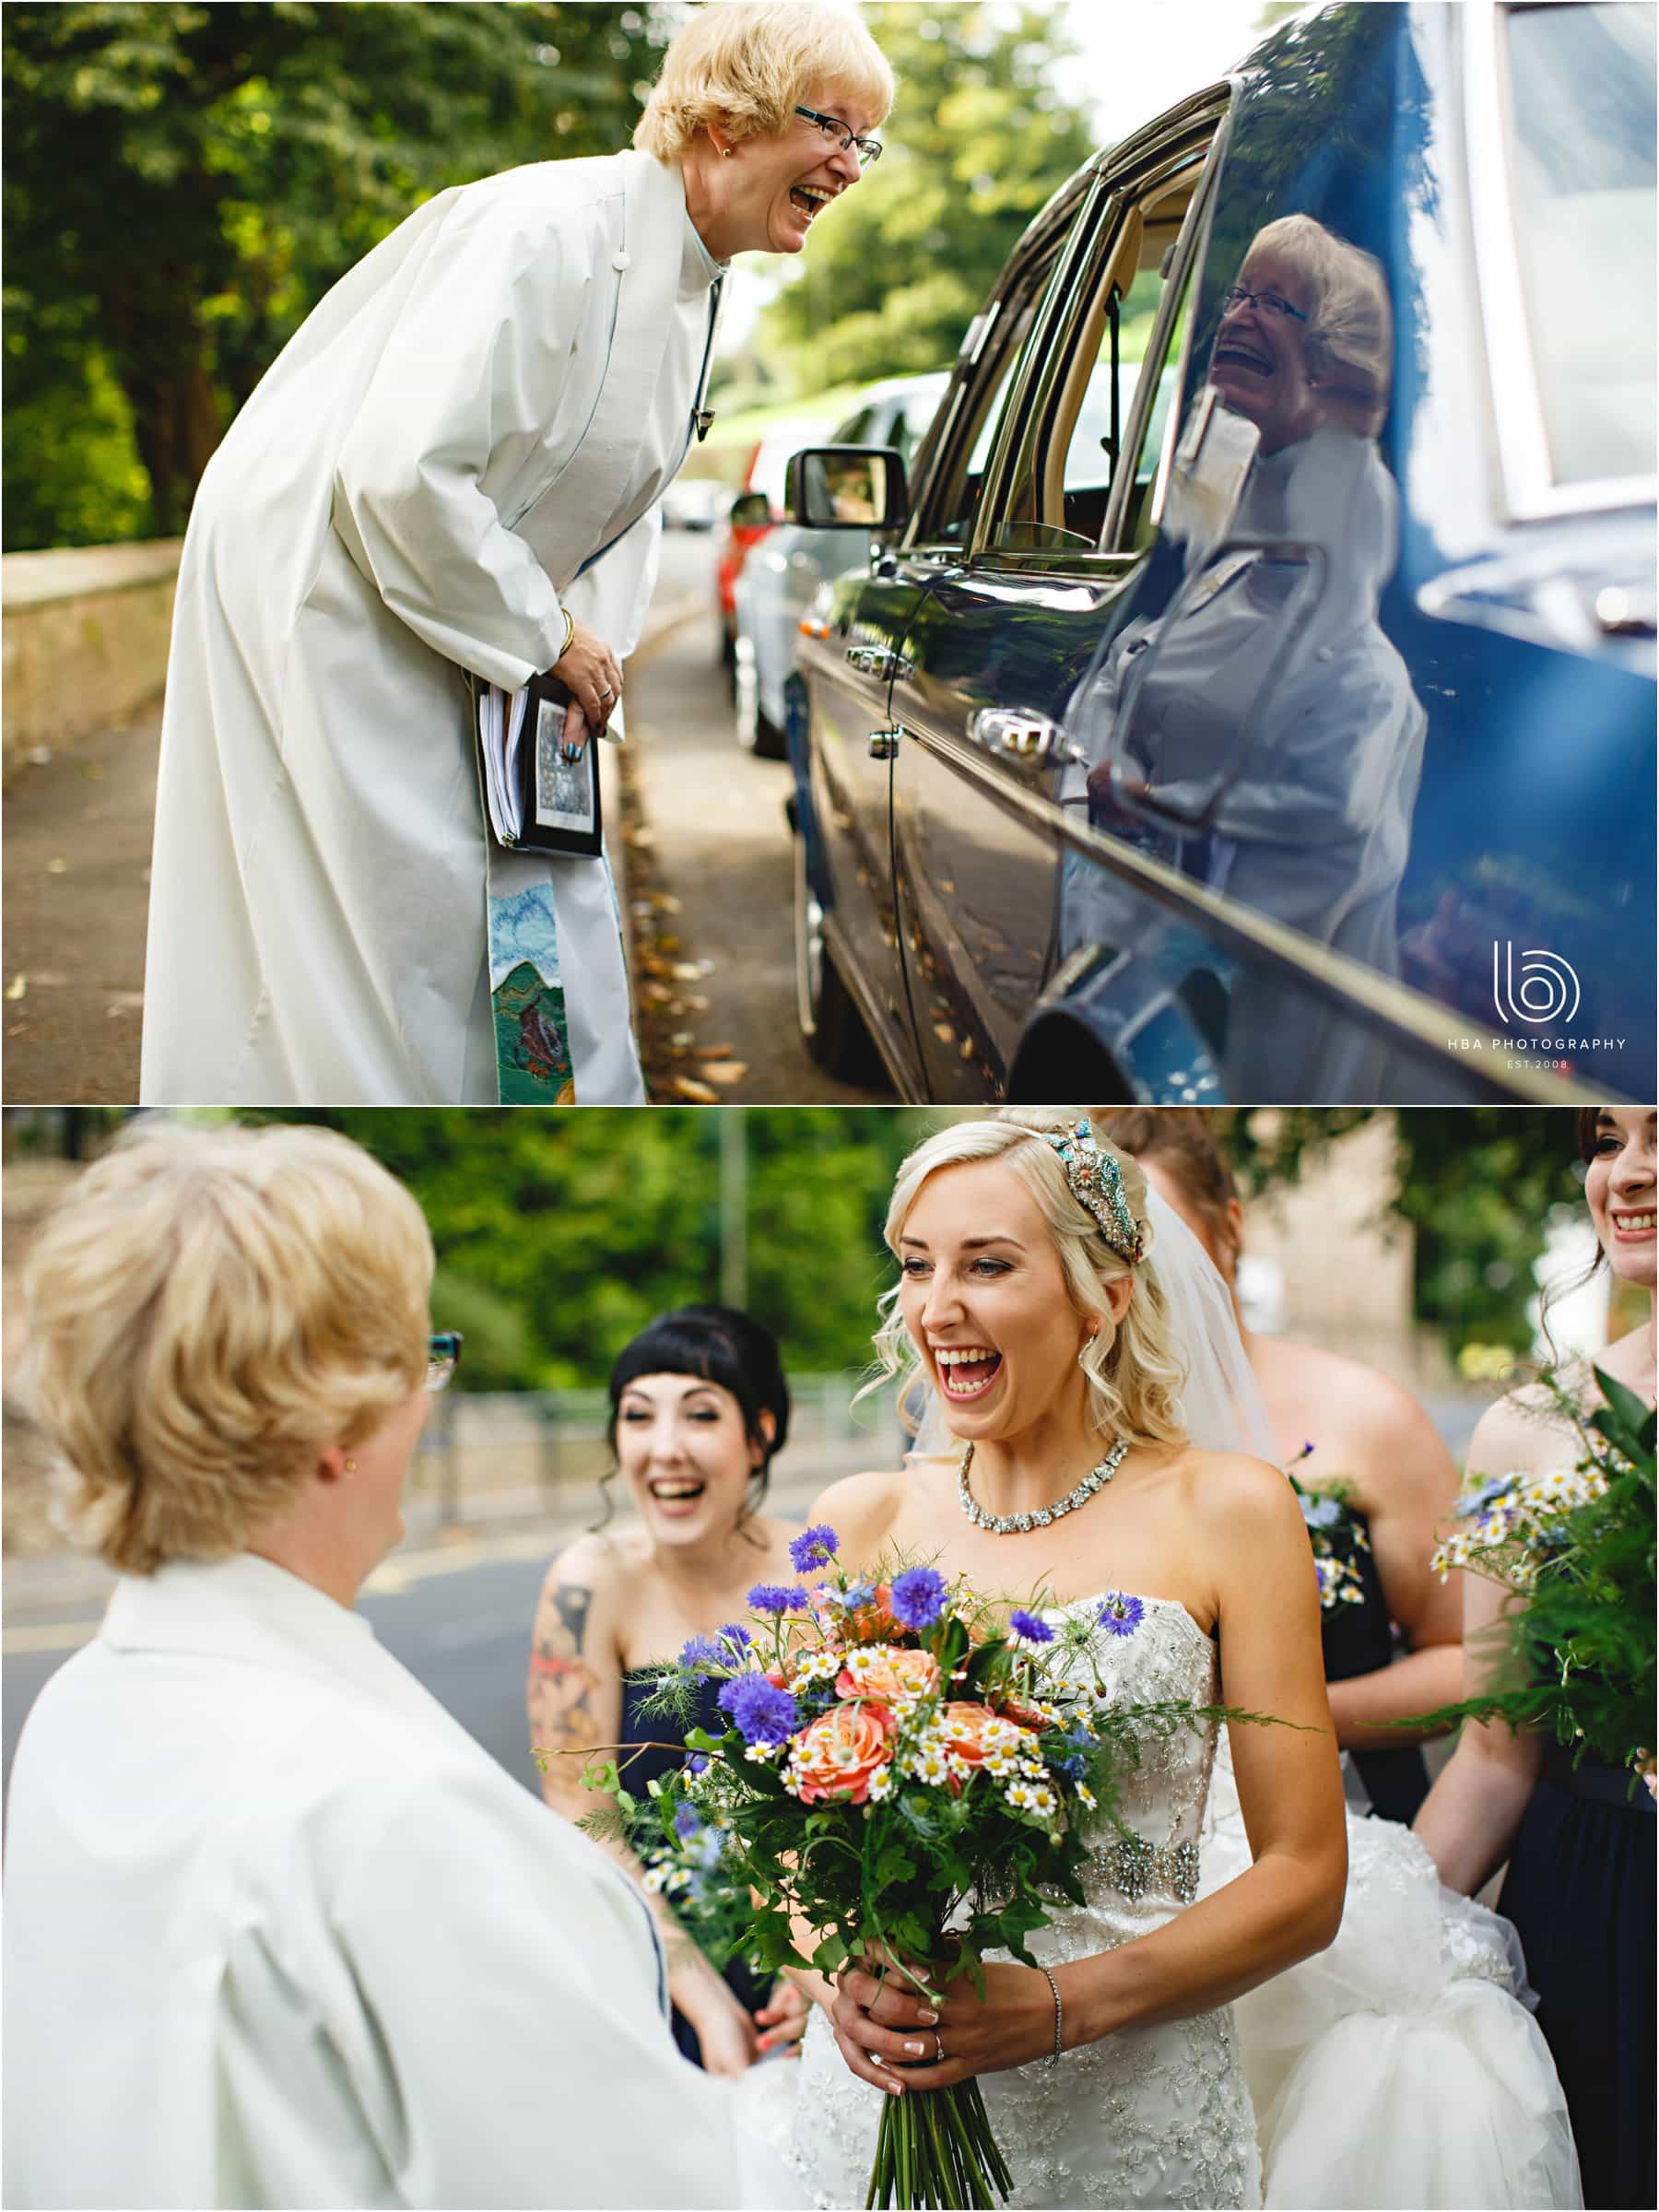 the bride arriving at the church